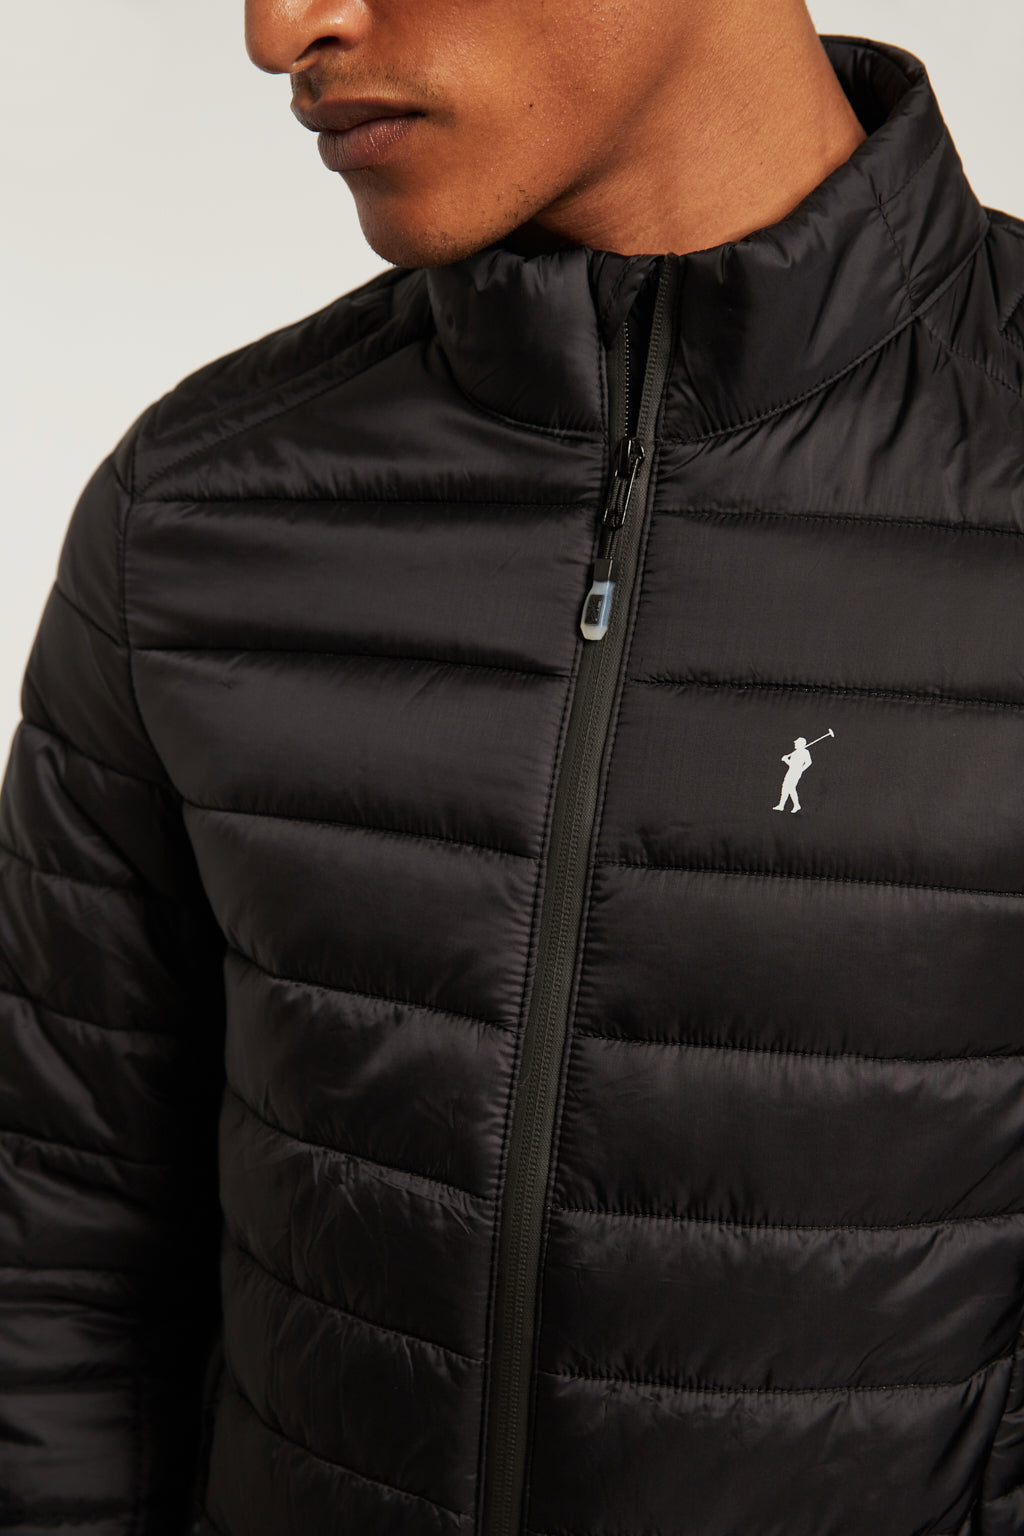 Black quilted jacket with heat-sealed zip closure